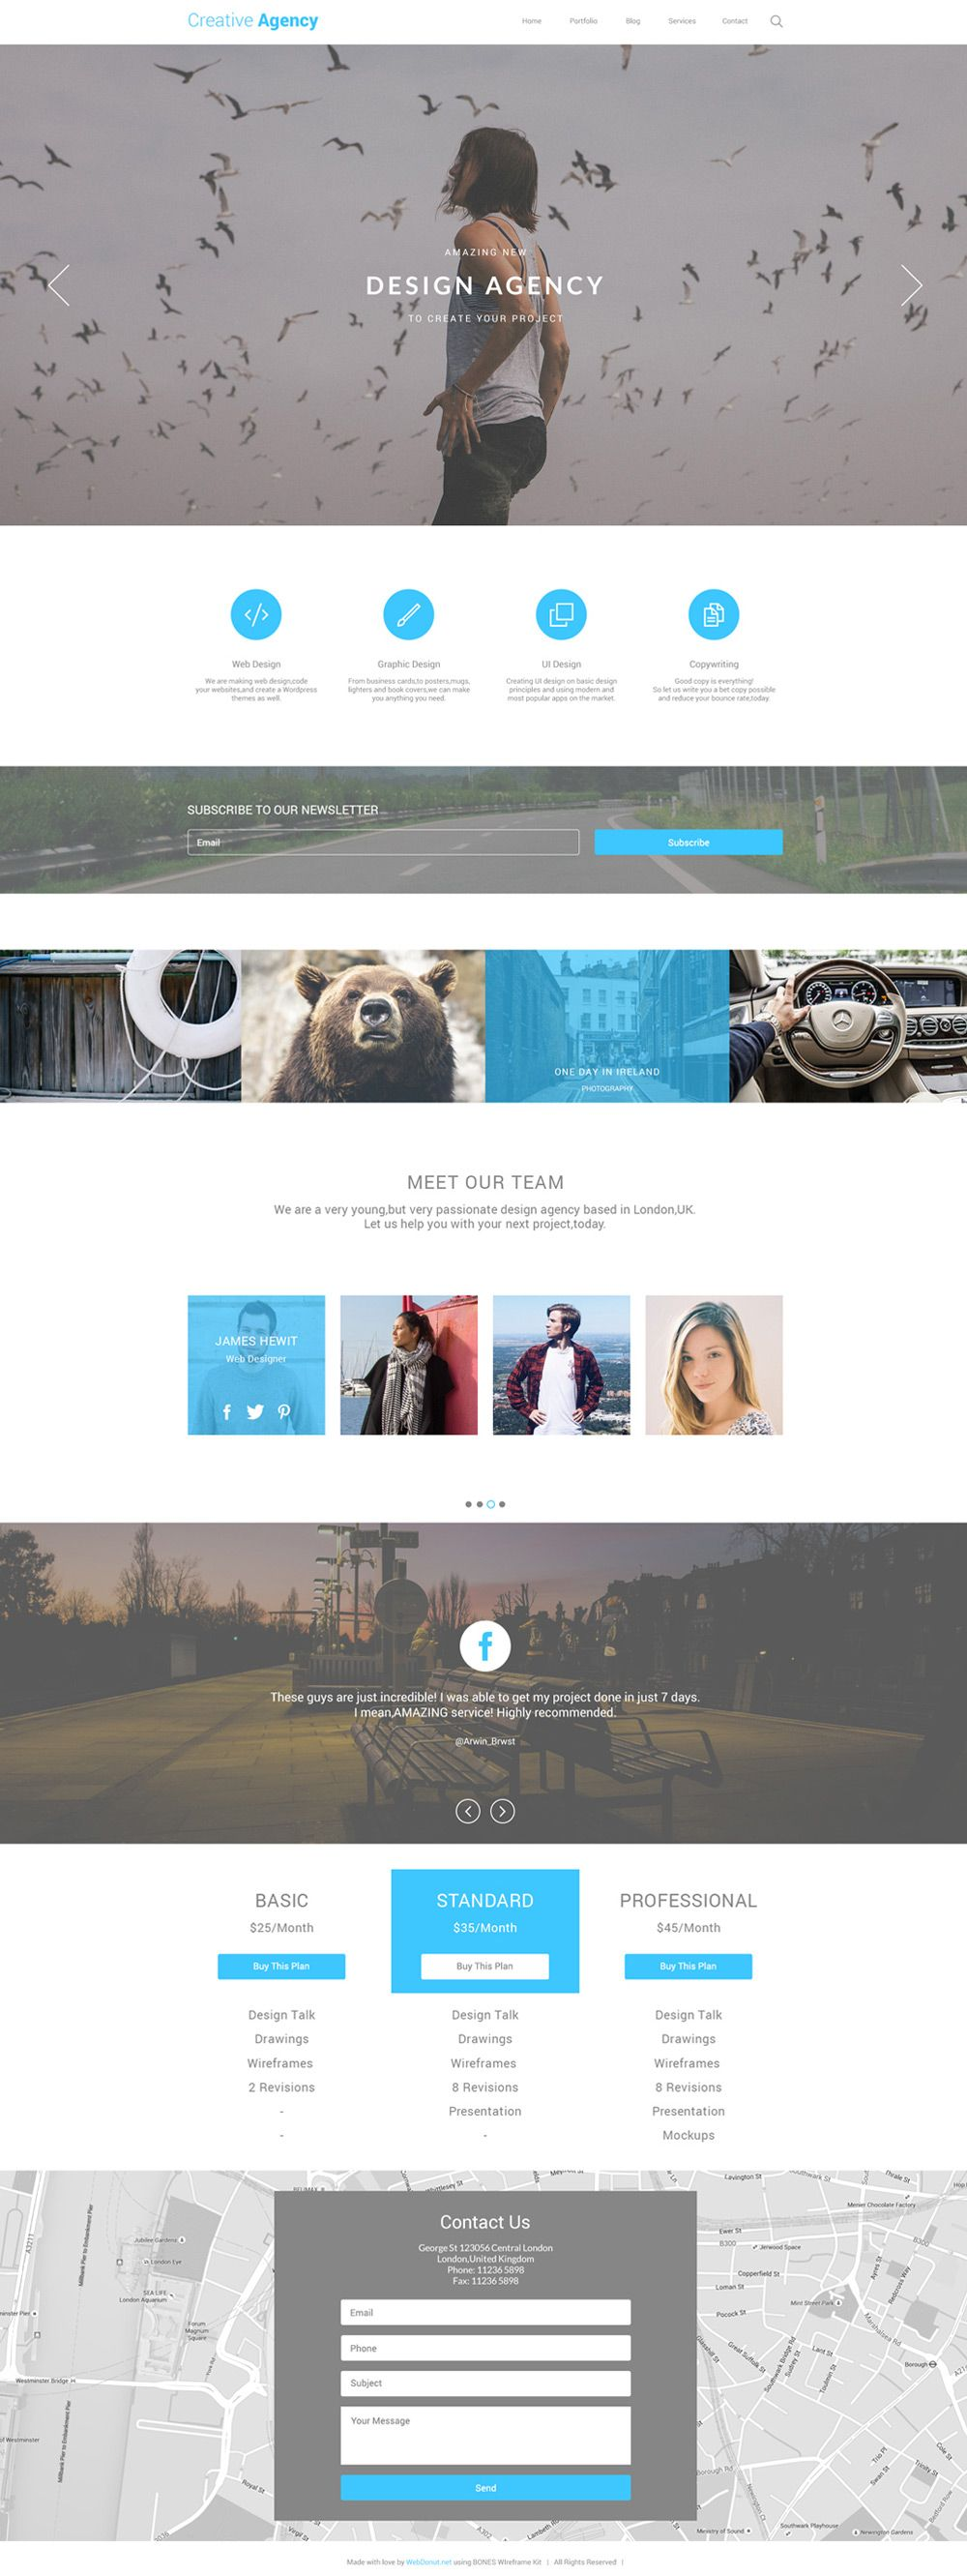 Creative Agency One Page Template PSD | AR+C | Pinterest